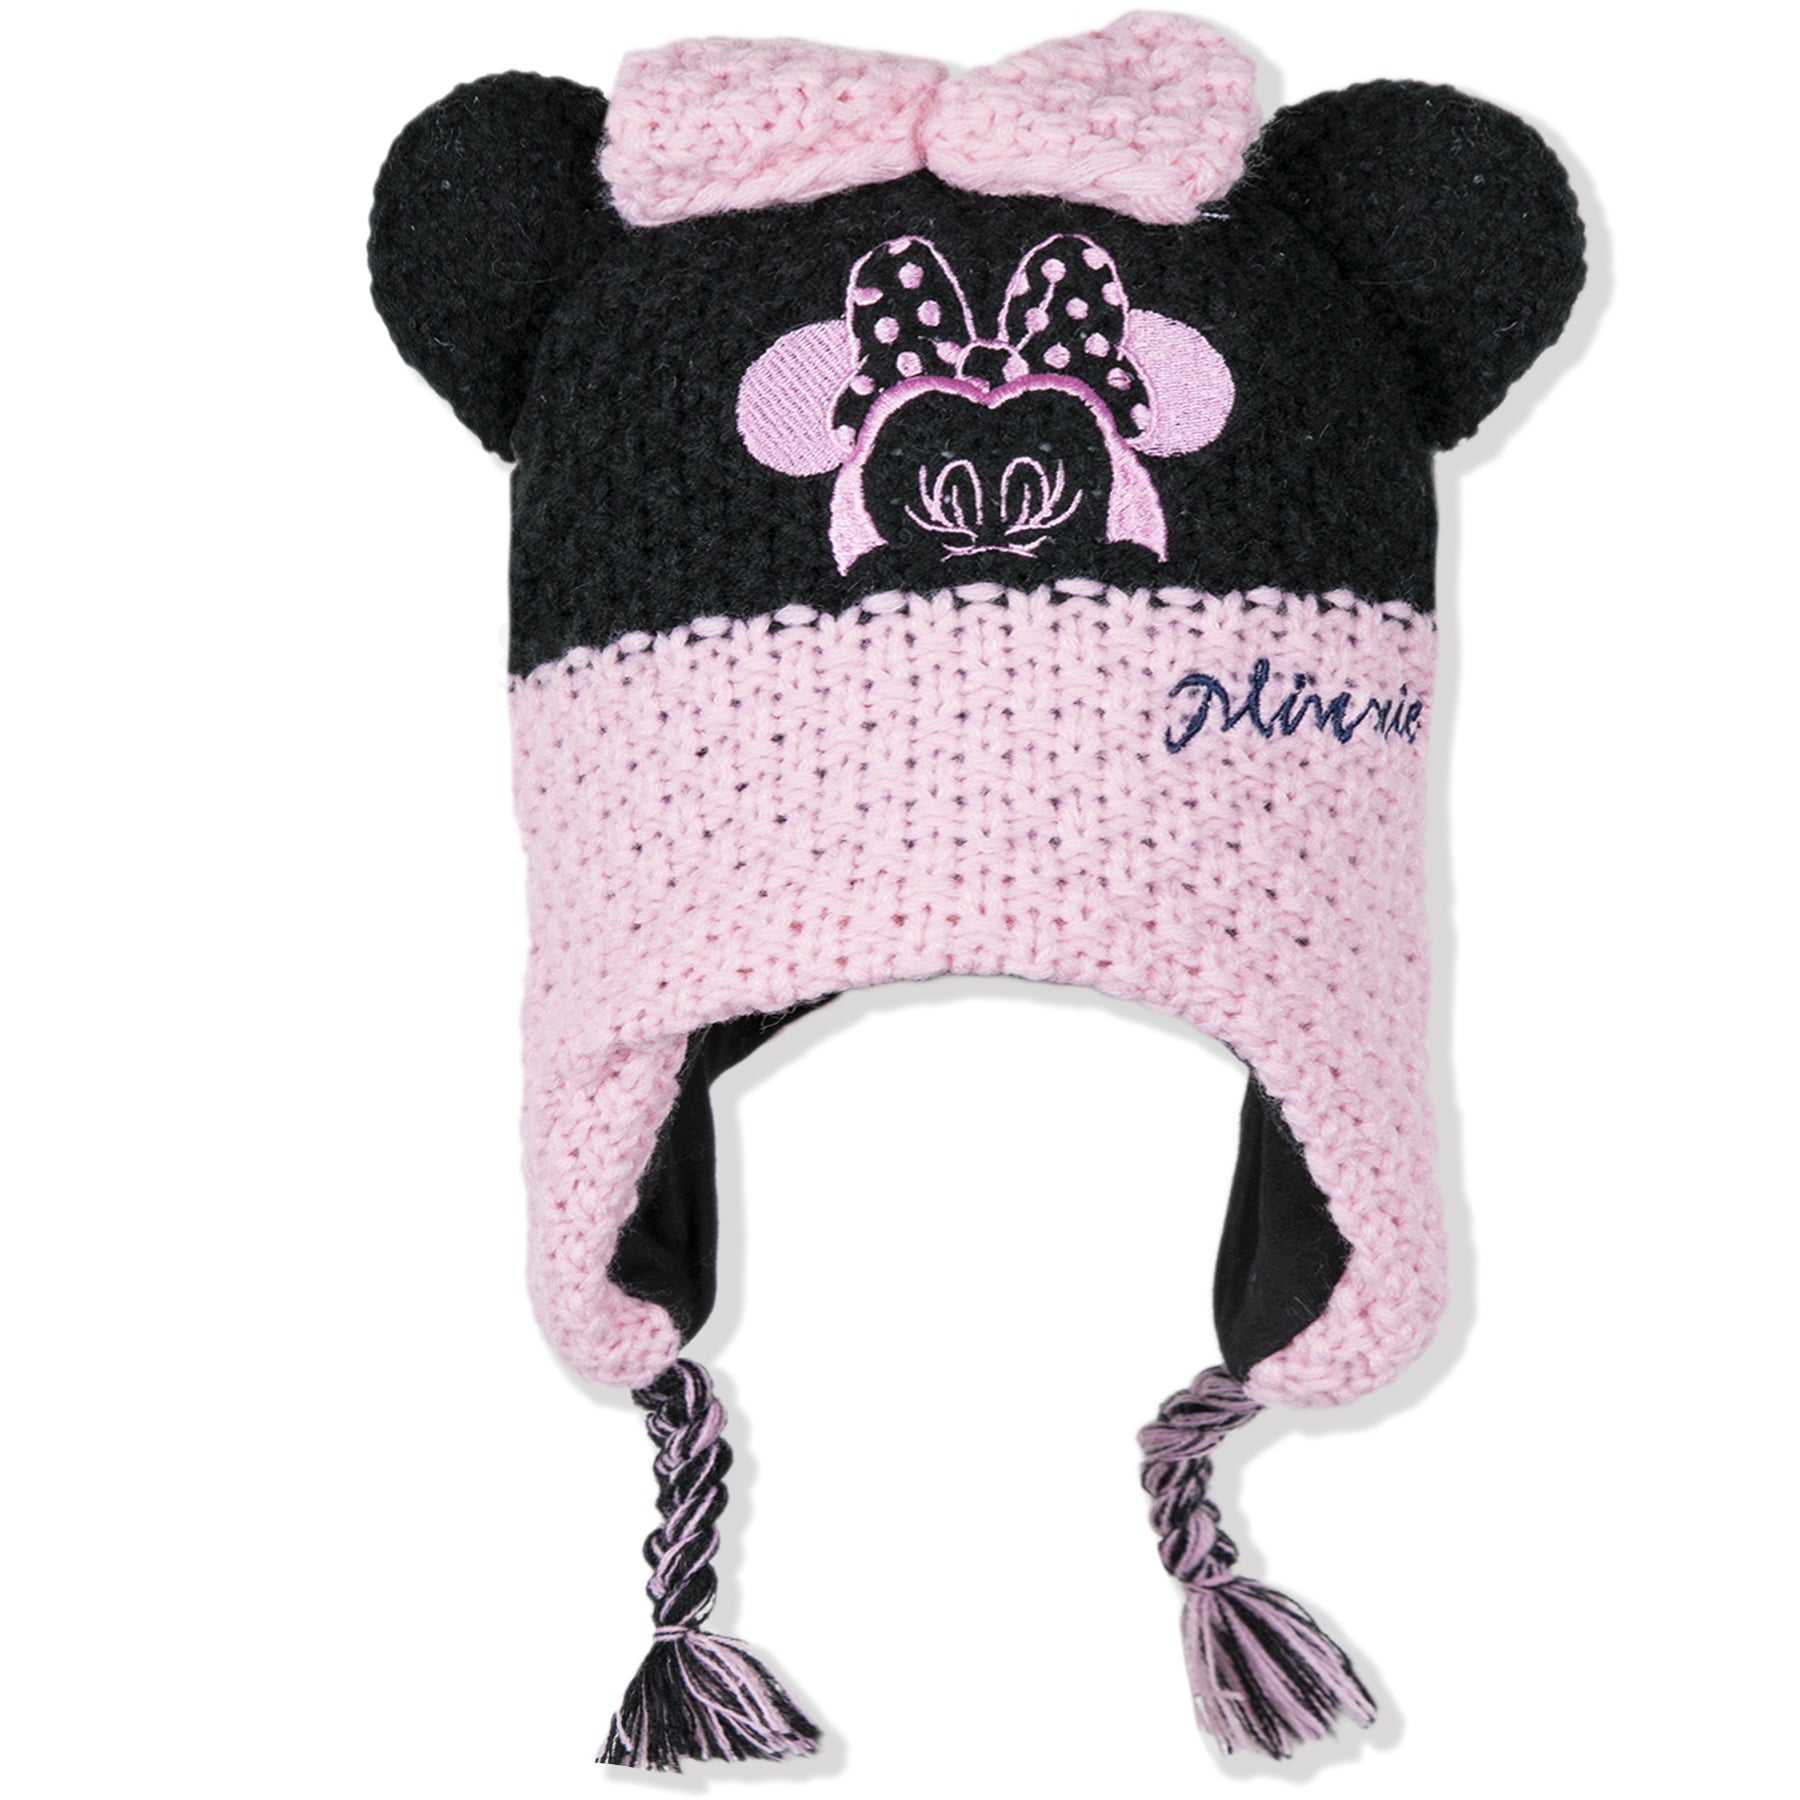 995491f135795 Disney Minnie Mouse Baby Girls Winter Hat Crochet Cotton Fabric 0-2 Years -  Pink